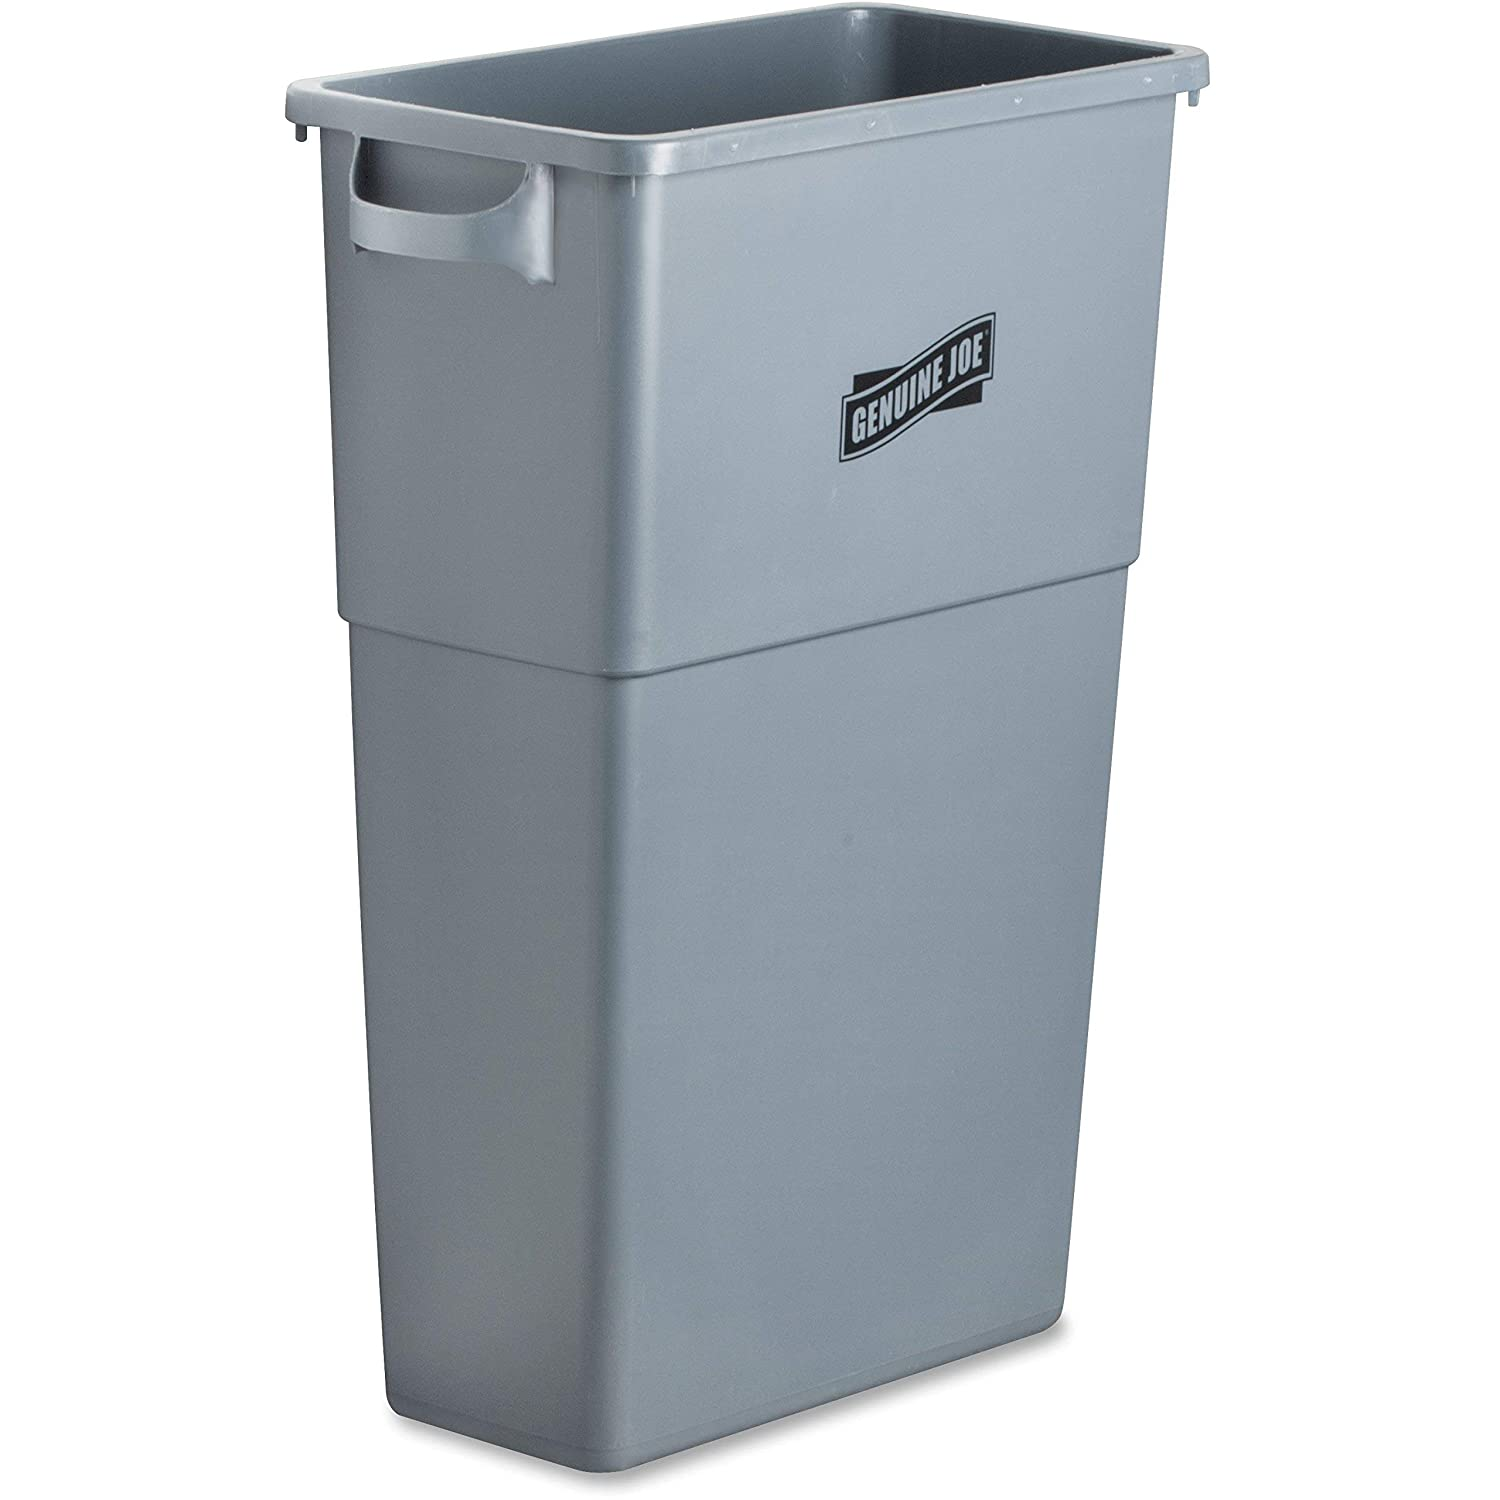 "Genuine Joe GJO60465 Plastic Space Saving Waste Container, 23 gallon Capacity, 23"" Width x 30"" Height x 11"" Depth, Gray"